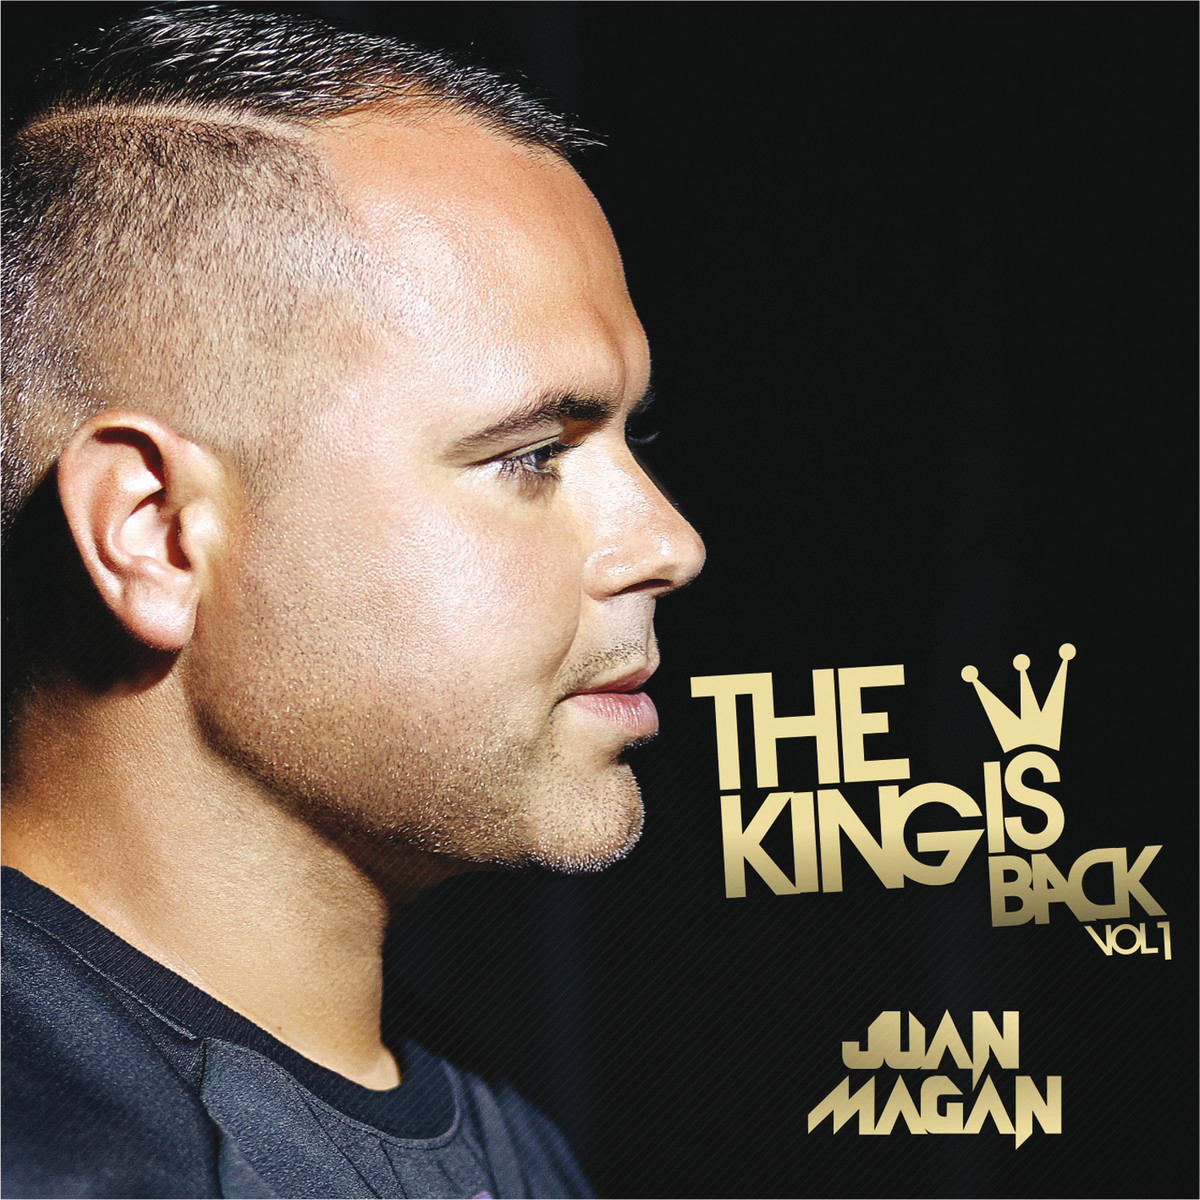 The king is back Vol. 1